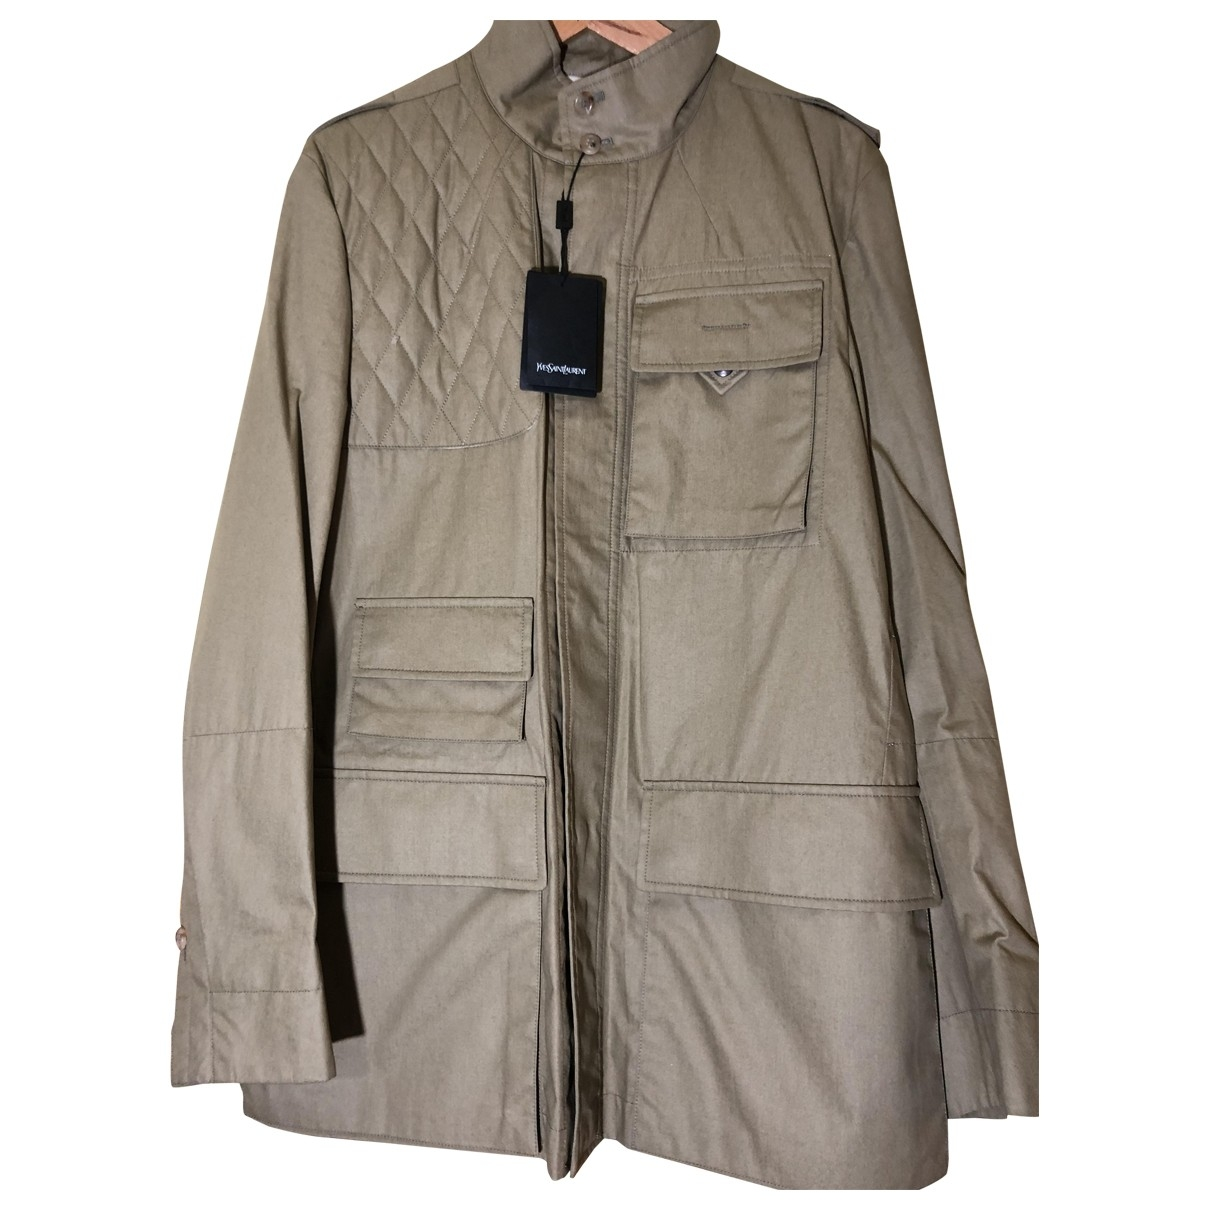 Yves Saint Laurent \N Beige Cotton jacket  for Men 46 IT